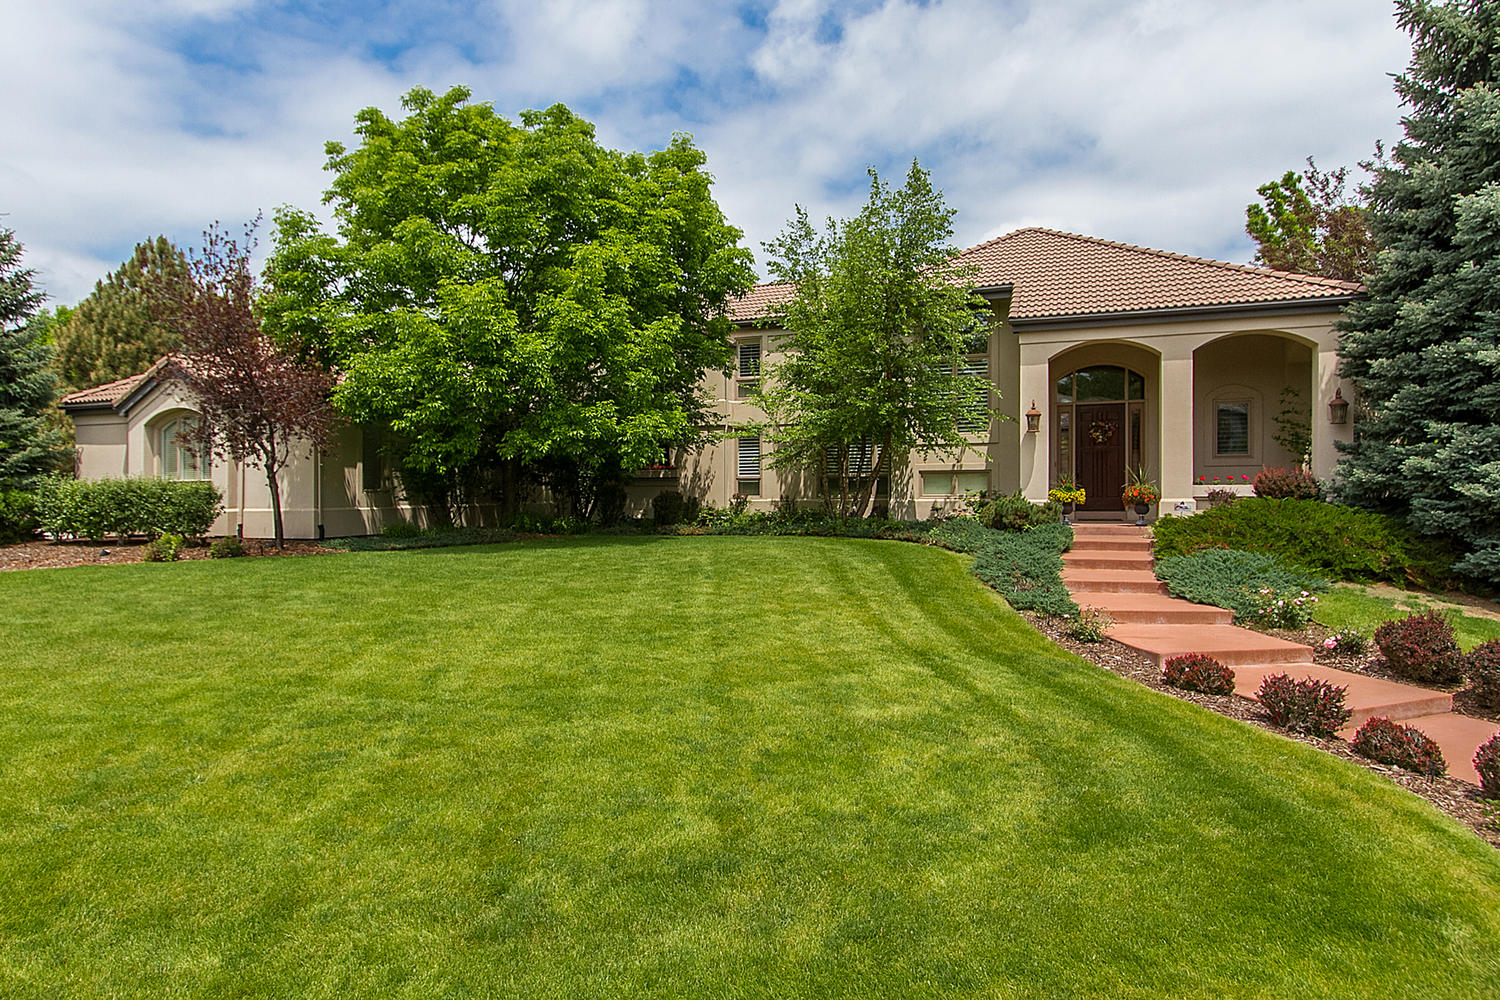 Single Family Home for Sale at Perfectly Poised Premium Site in The Preserve 5775 S Forest St Greenwood Village, Colorado, 80121 United States